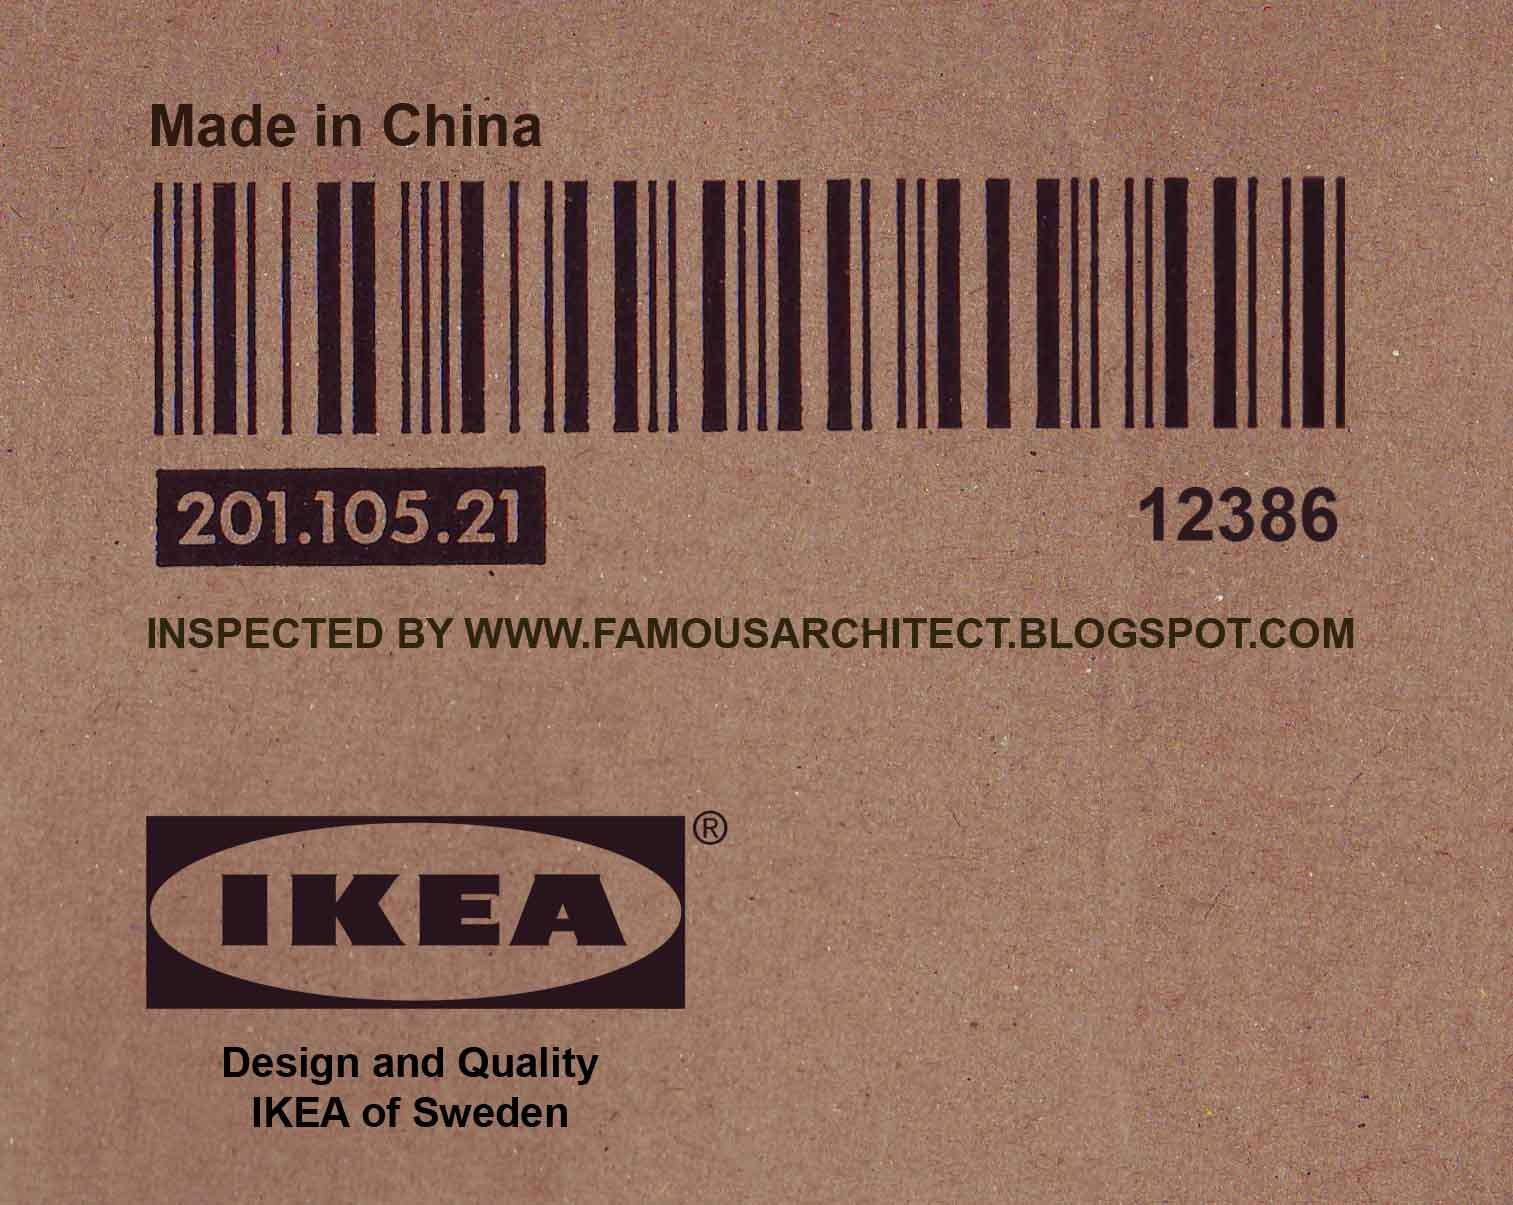 ikea essay introduction